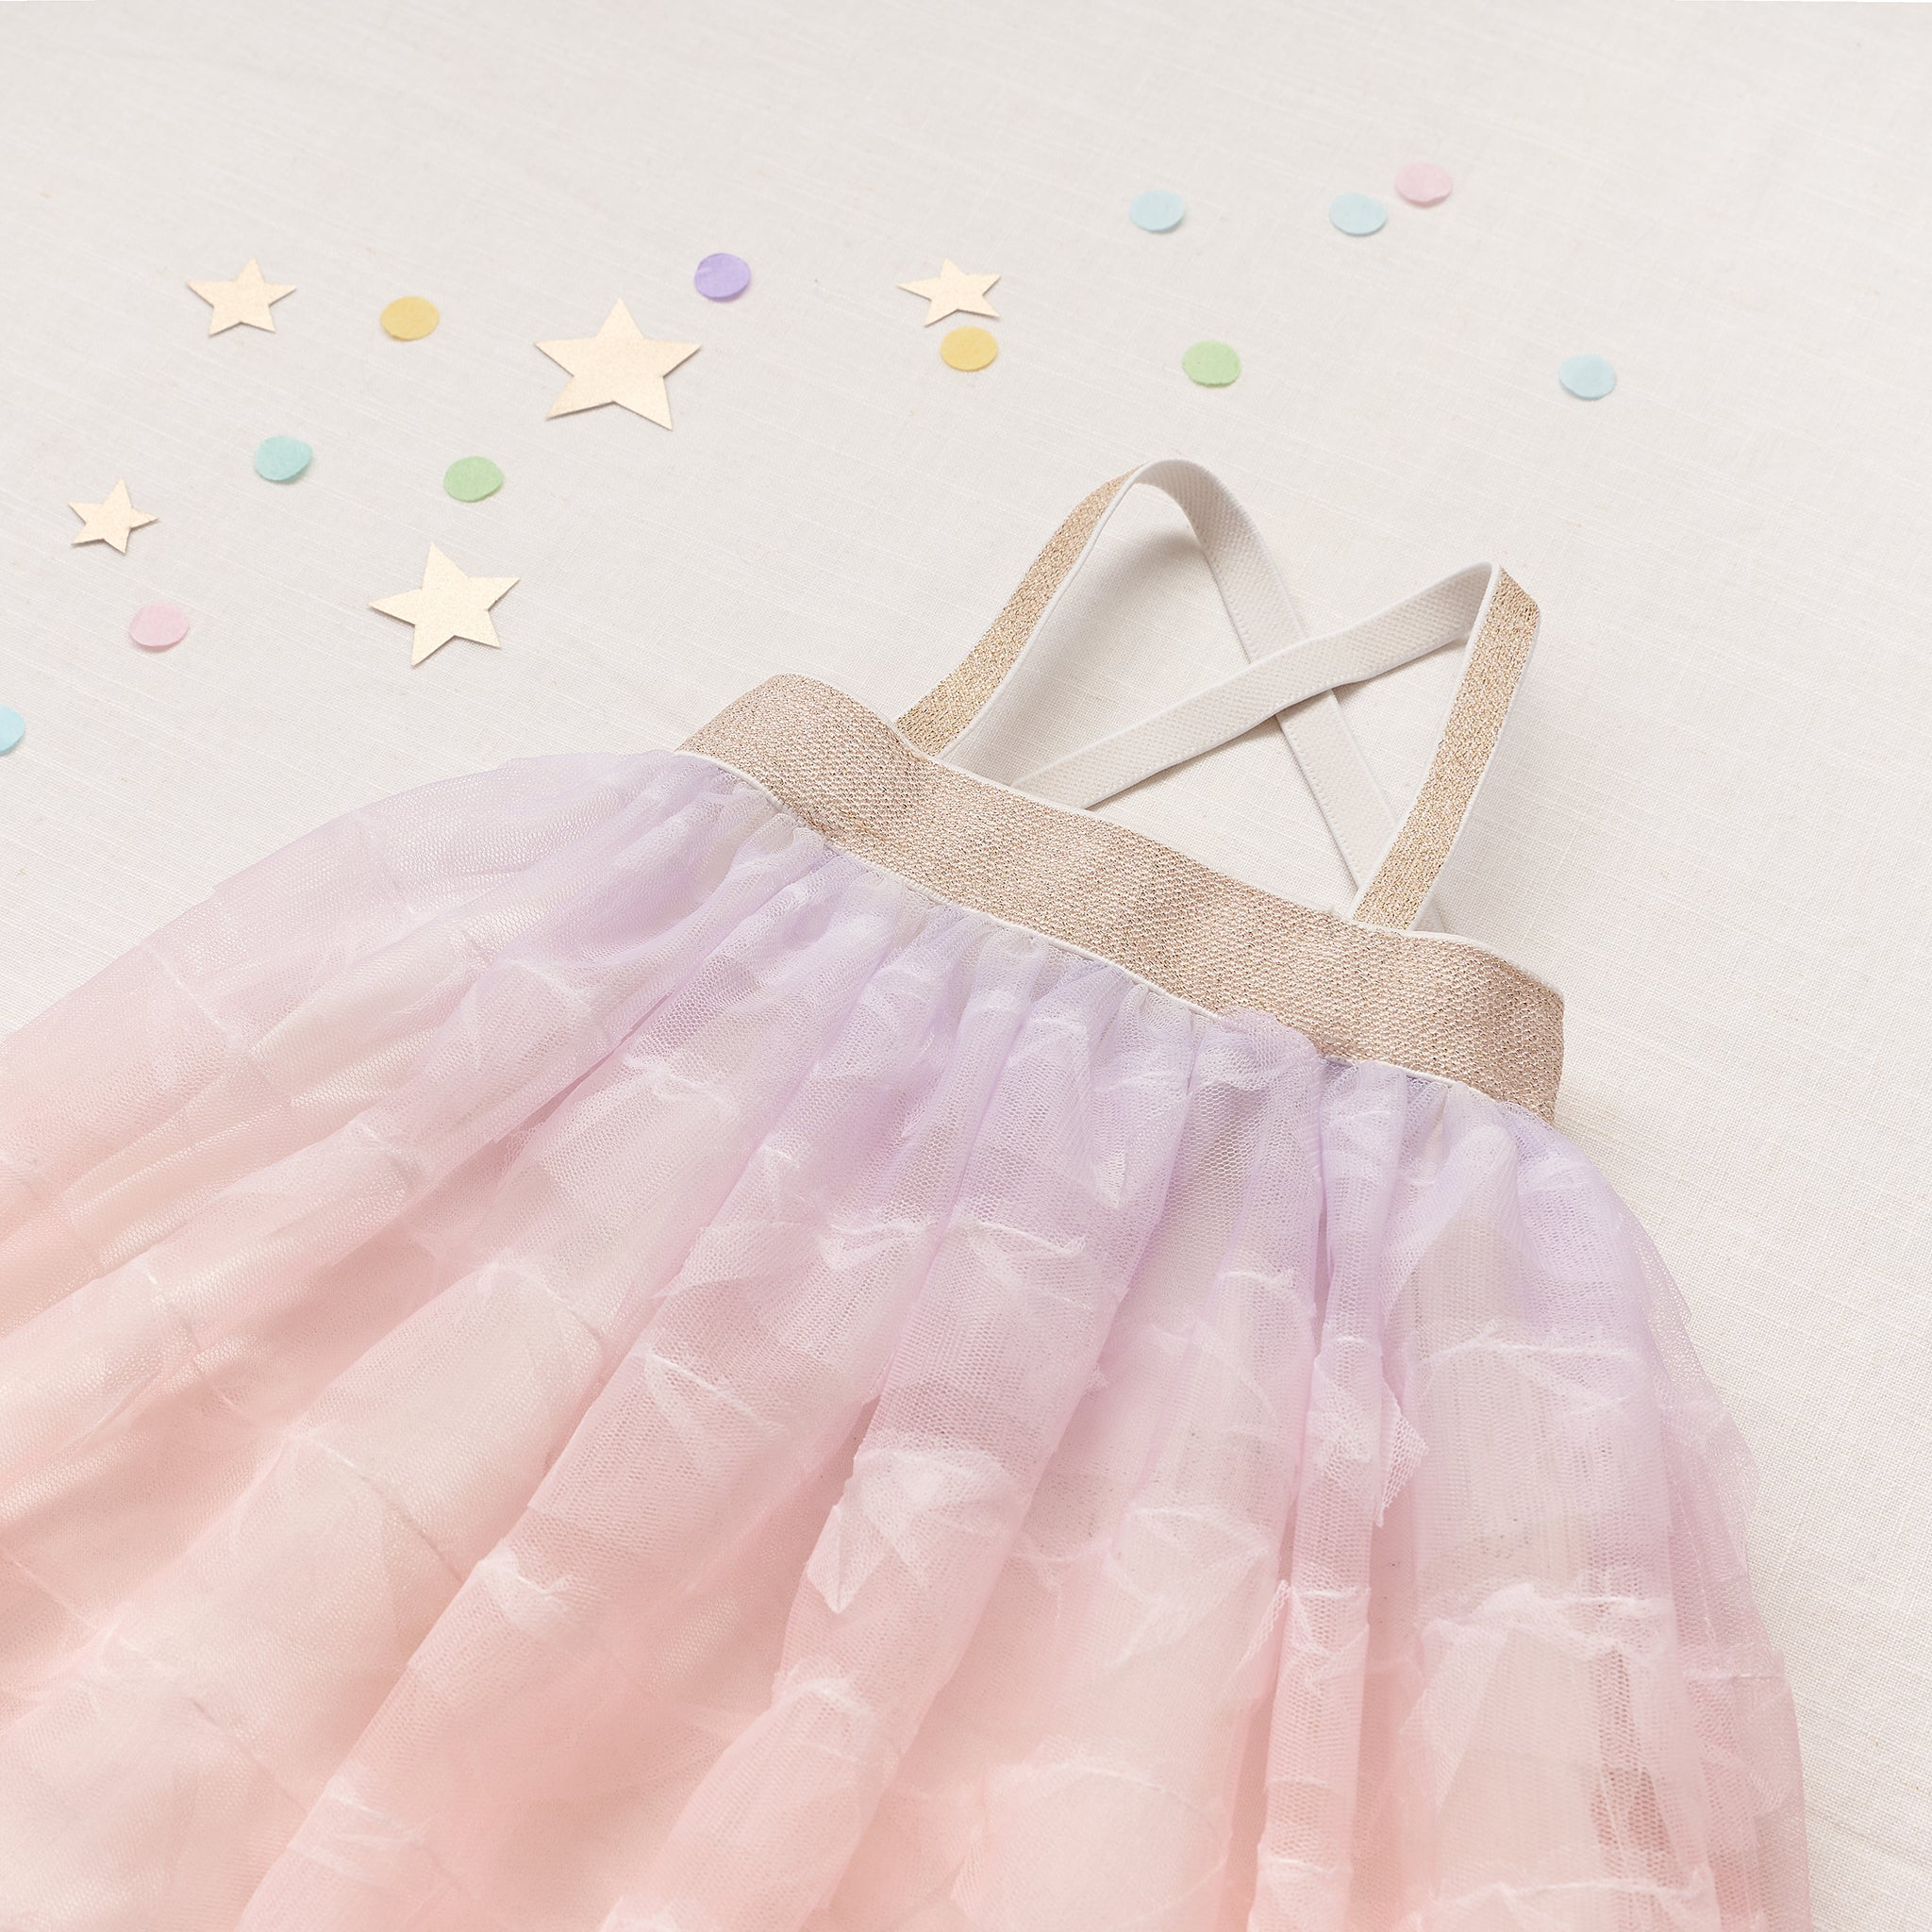 Rainbow Magic Dress (Size 6/7 & 8/9 Only)